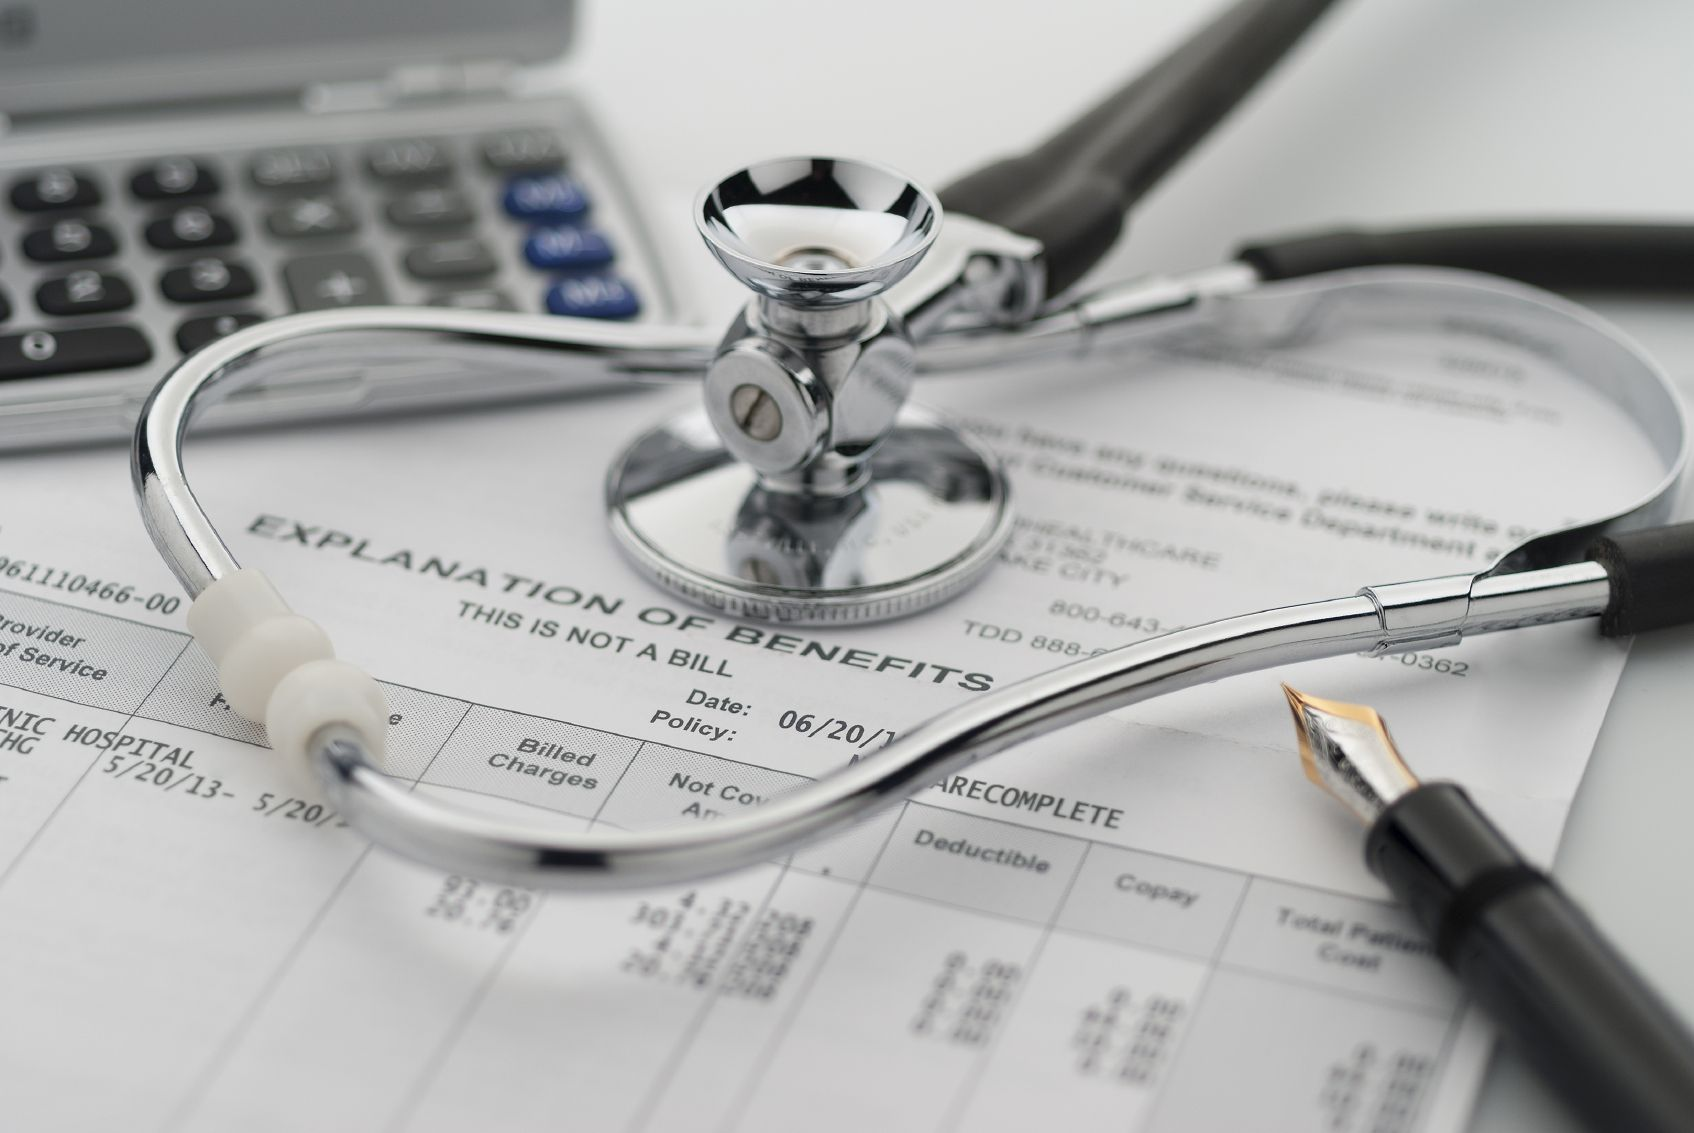 Medical Billing Service With All Of The Pressures You Face Running